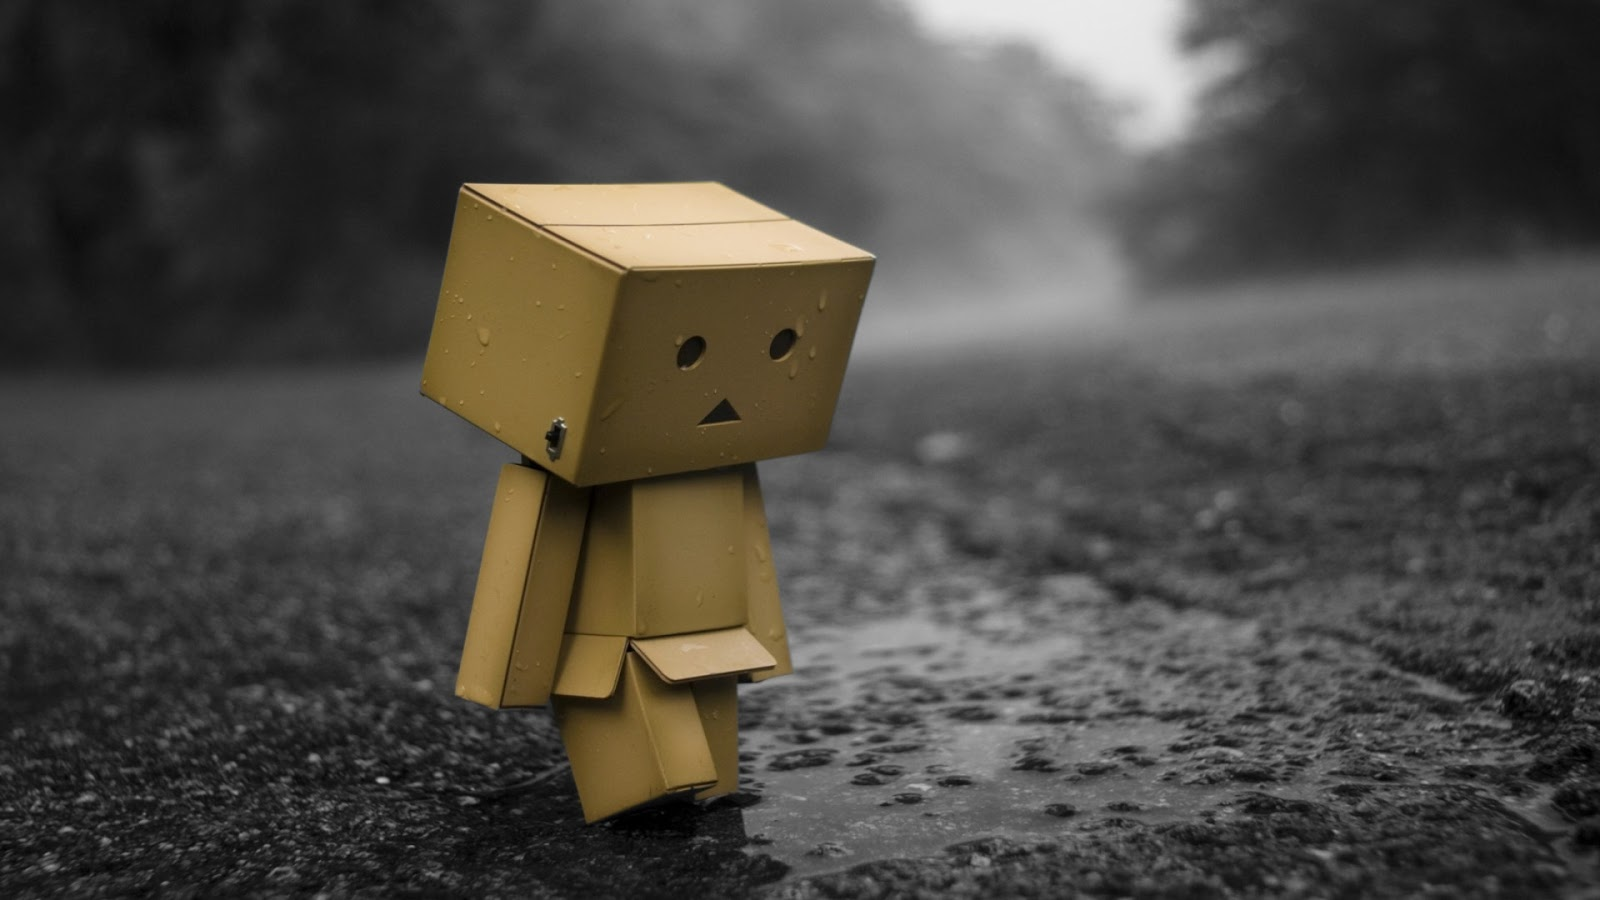 Alone sad Danbo 1600x900